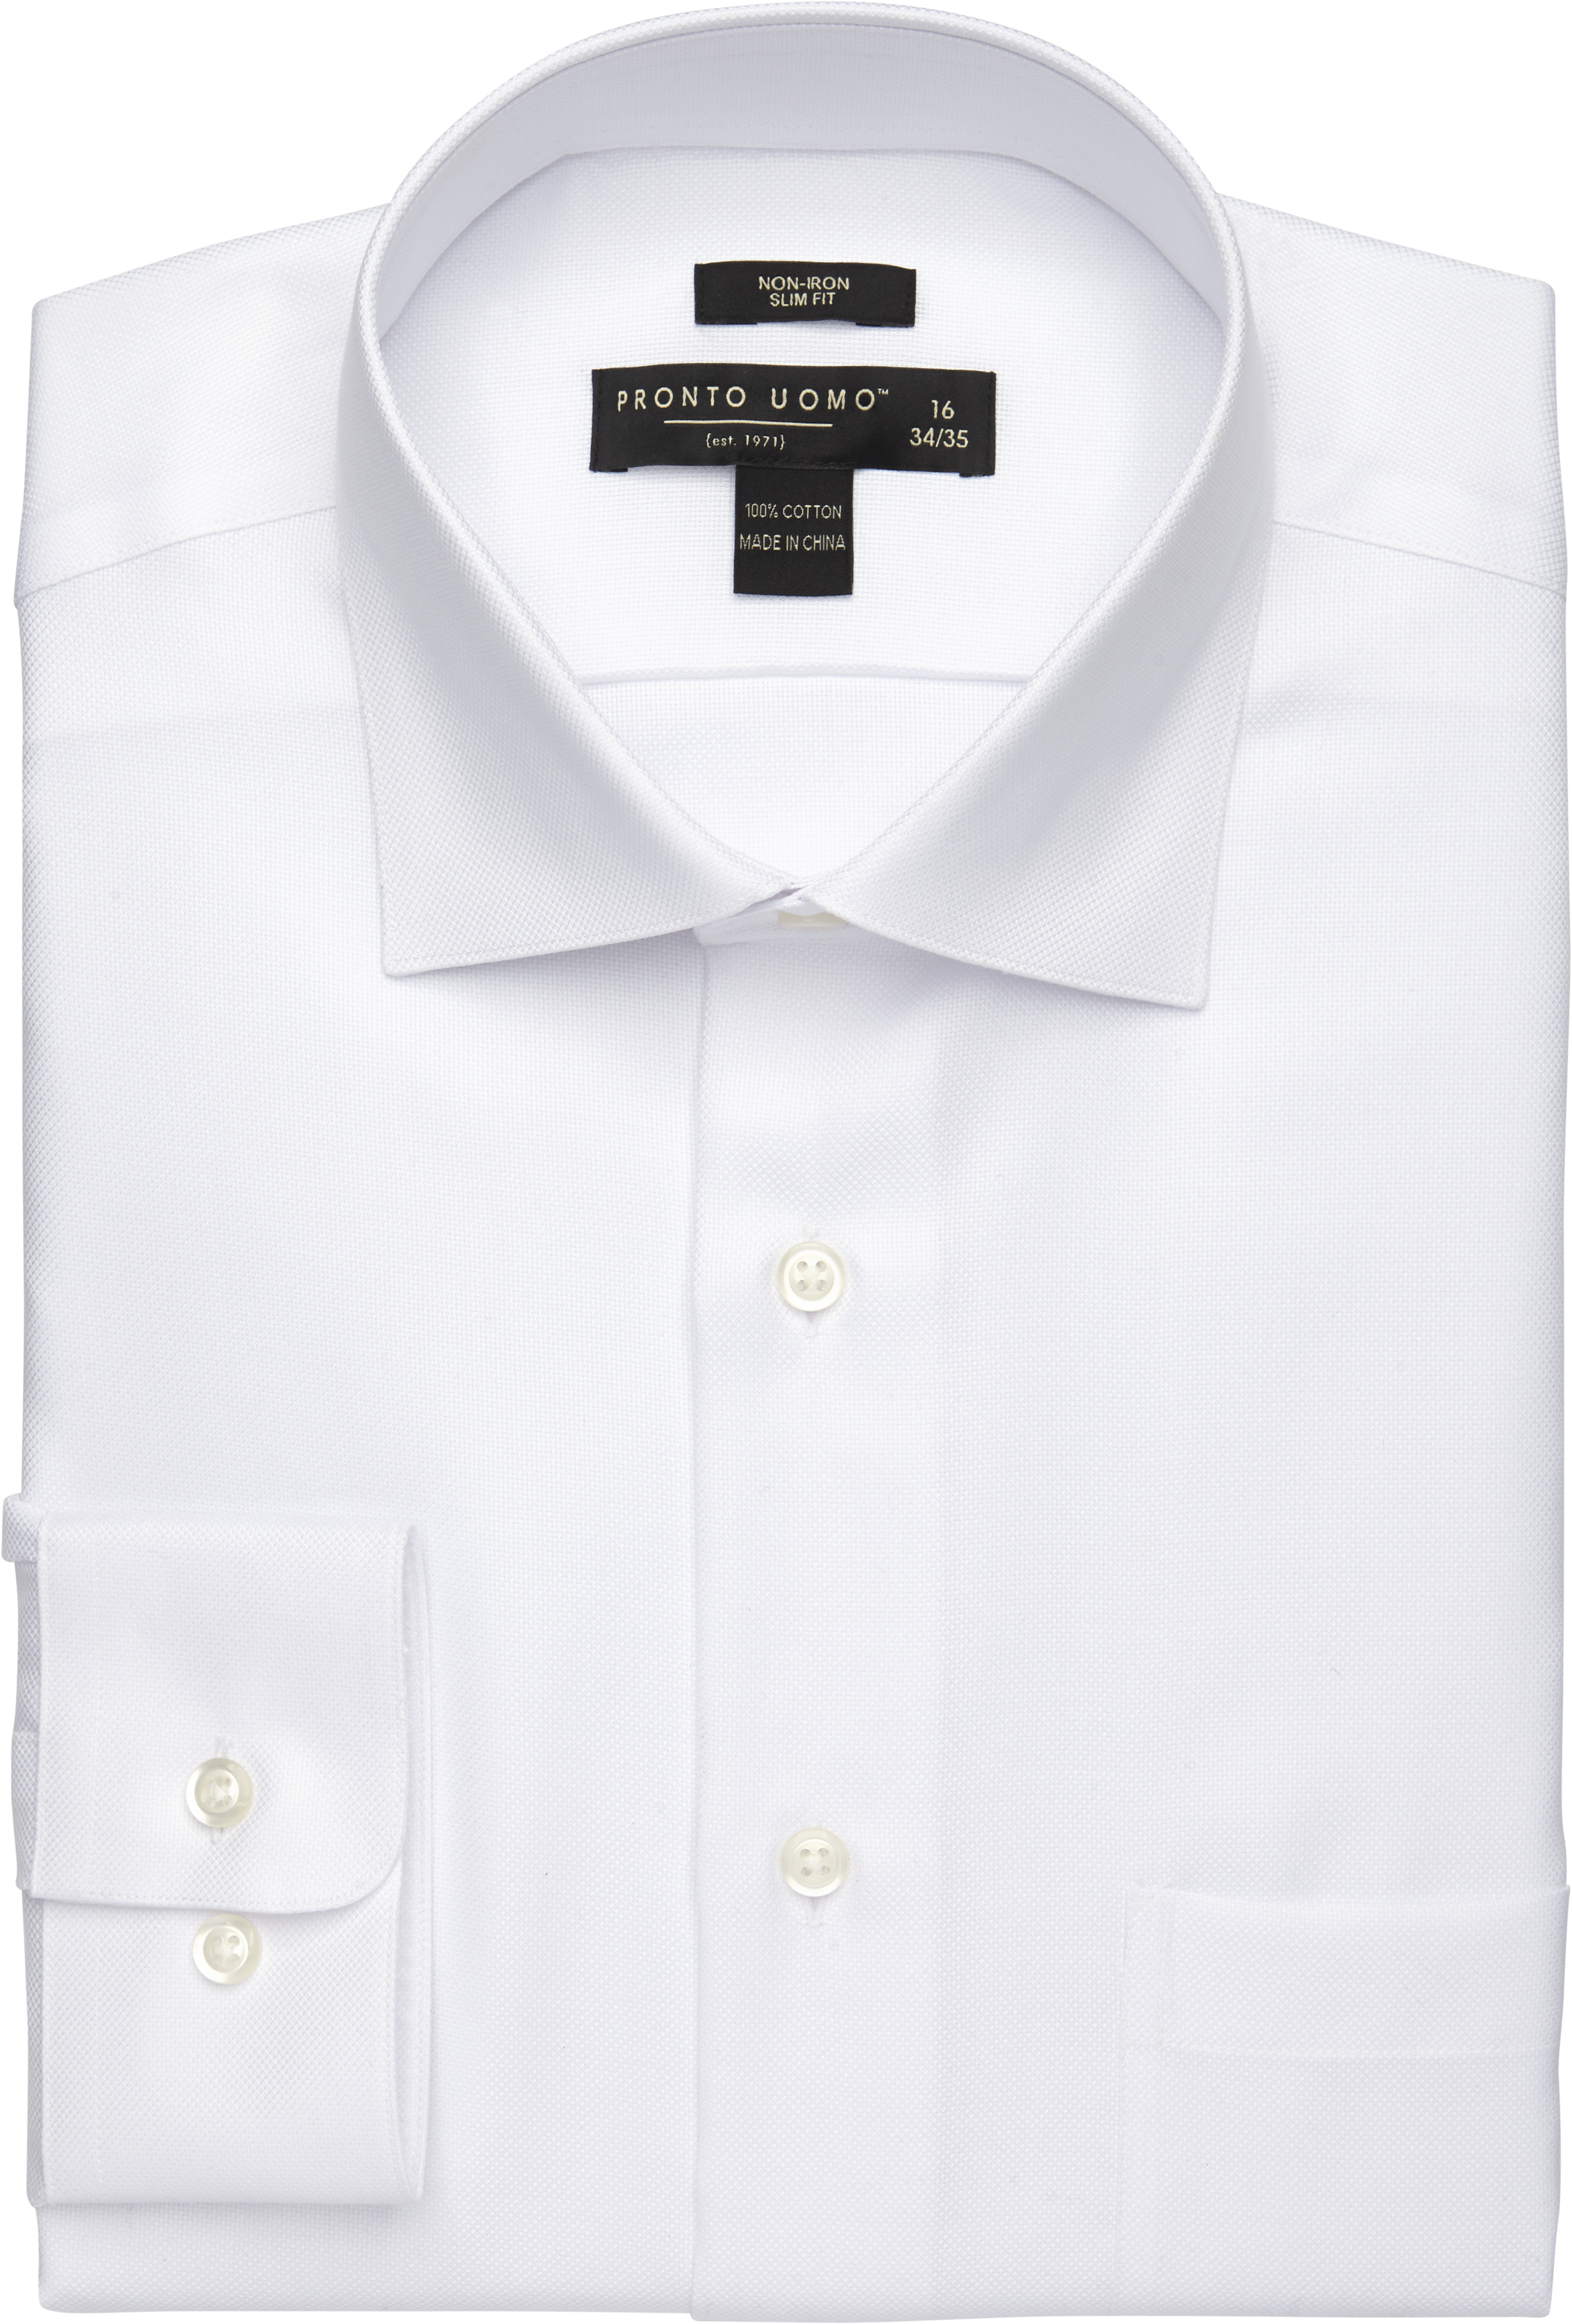 Pronto Uomo White Queen s Oxford Slim Fit Dress Shirt - Mens Home - Men s  Wearhouse aa7f92a13